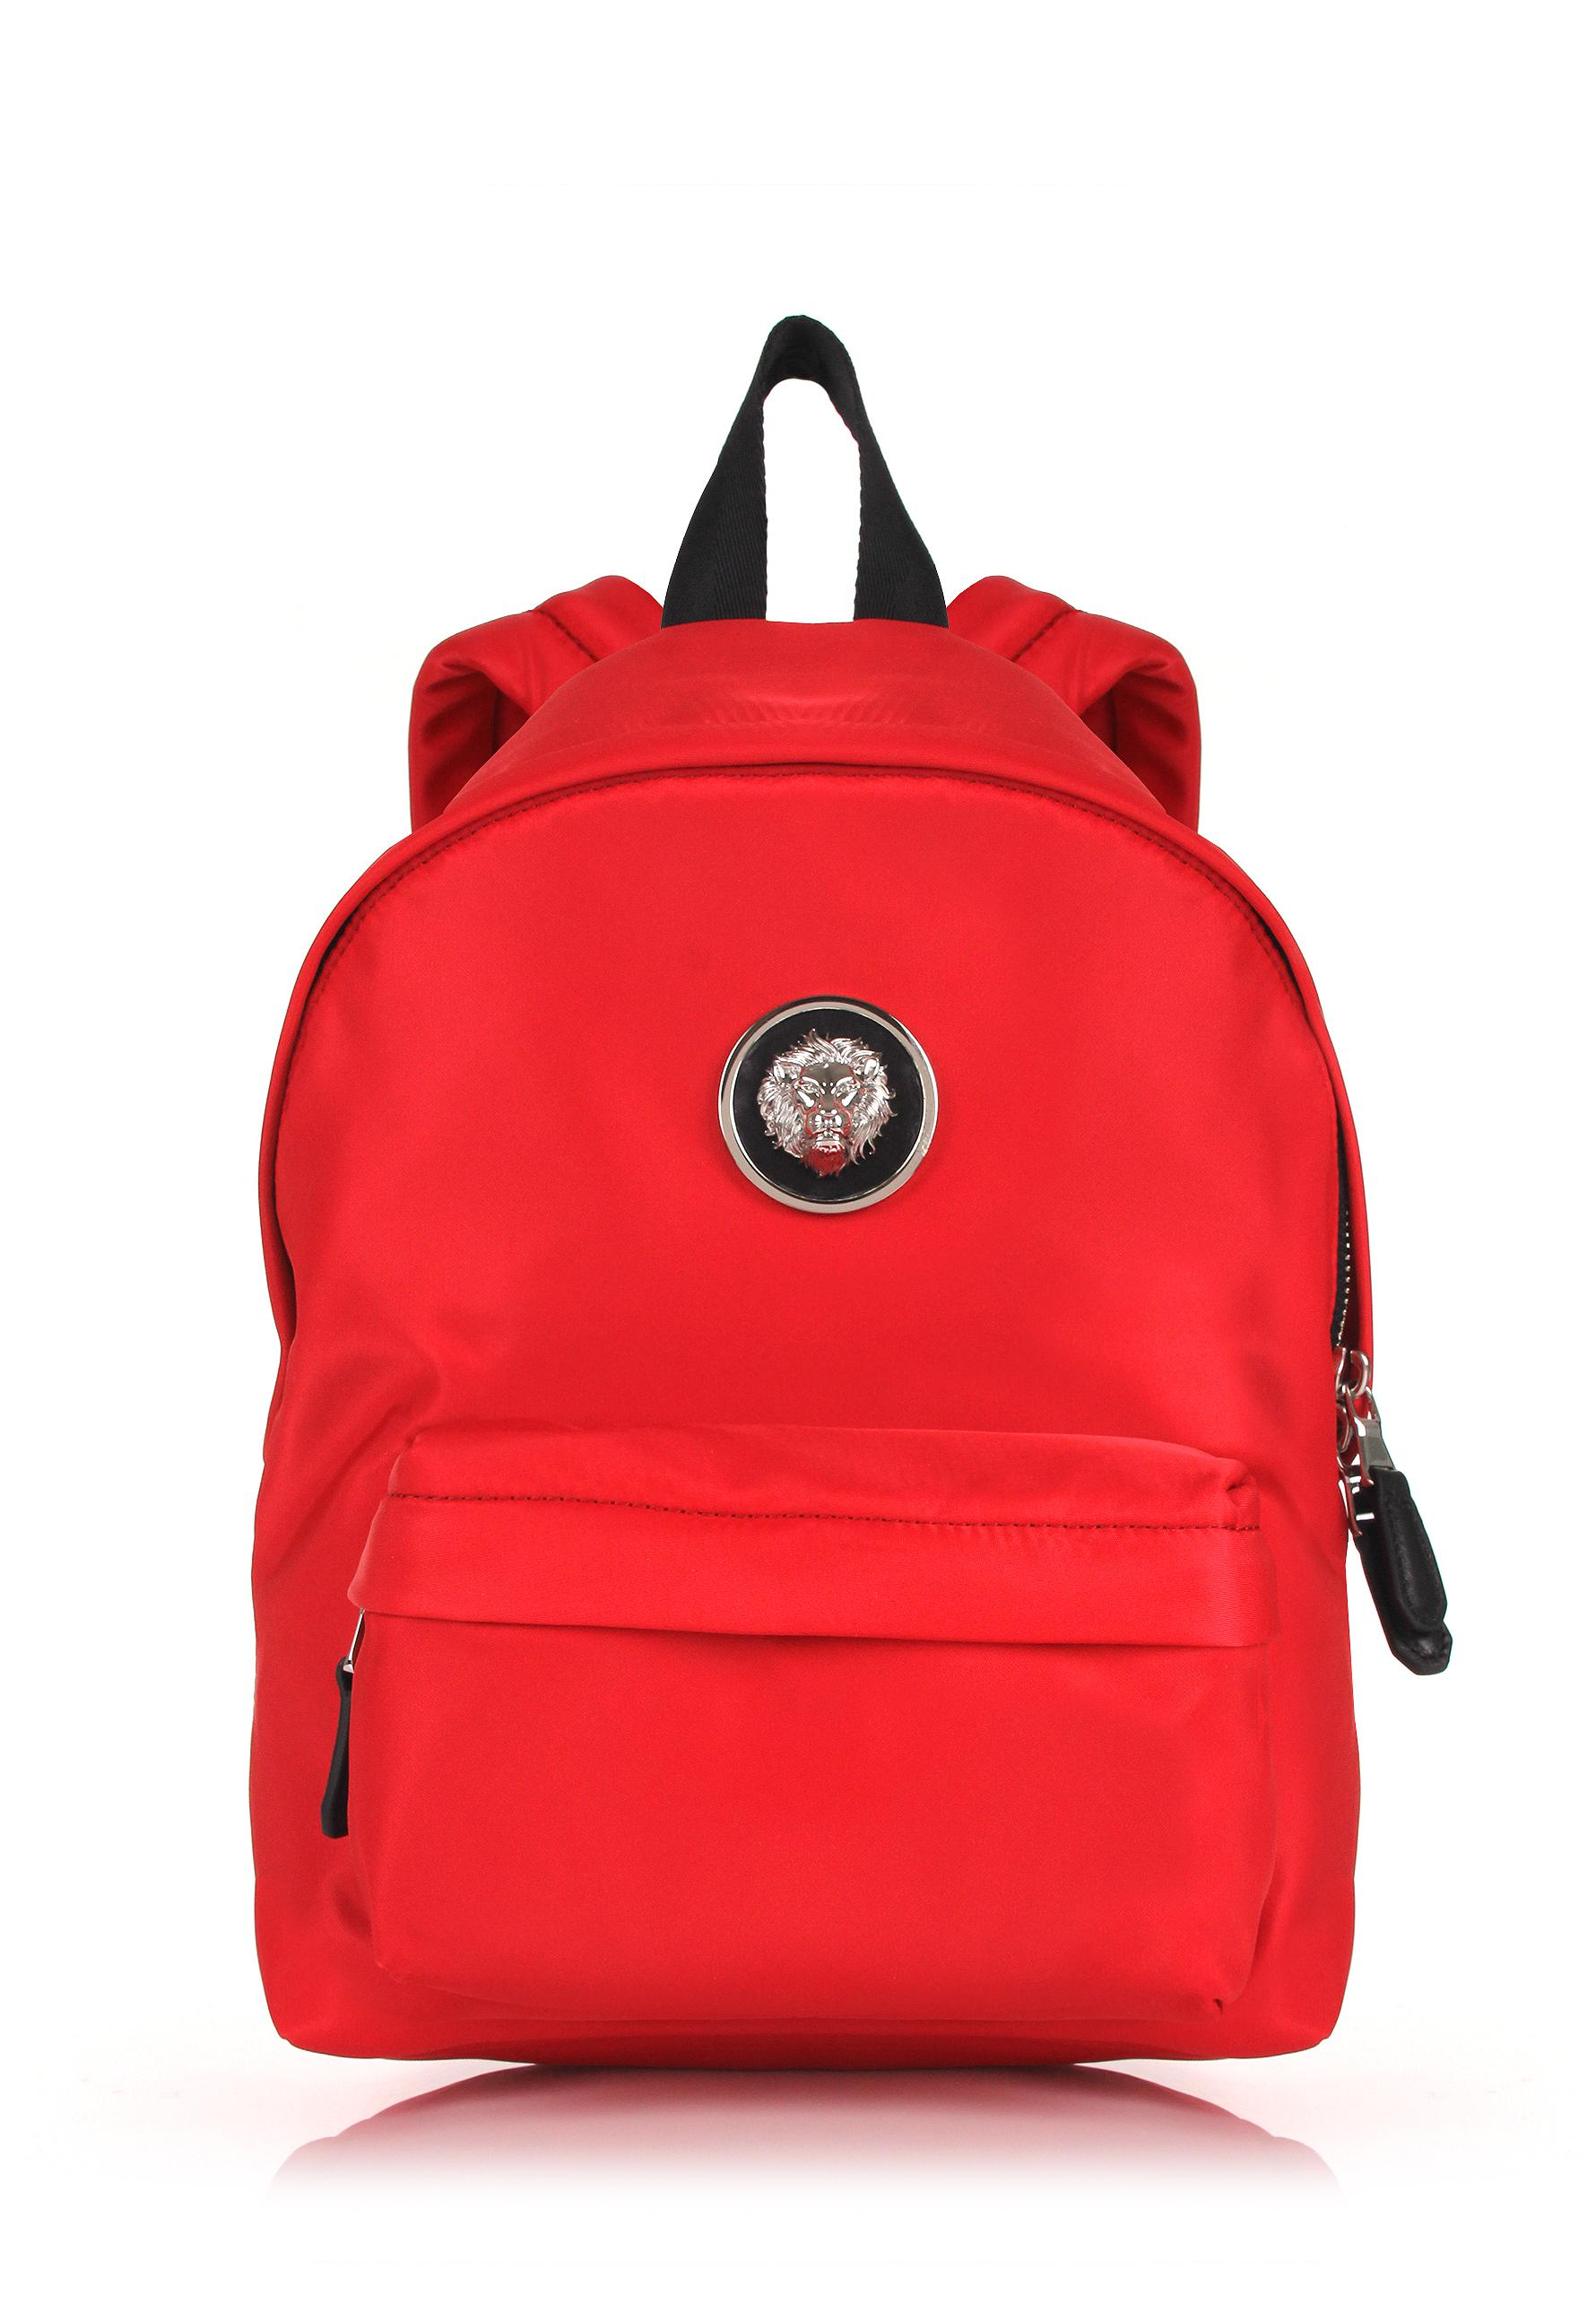 44395242a54a Versus Small Nylon Lion Head Backpack Red nickel in Red - Lyst